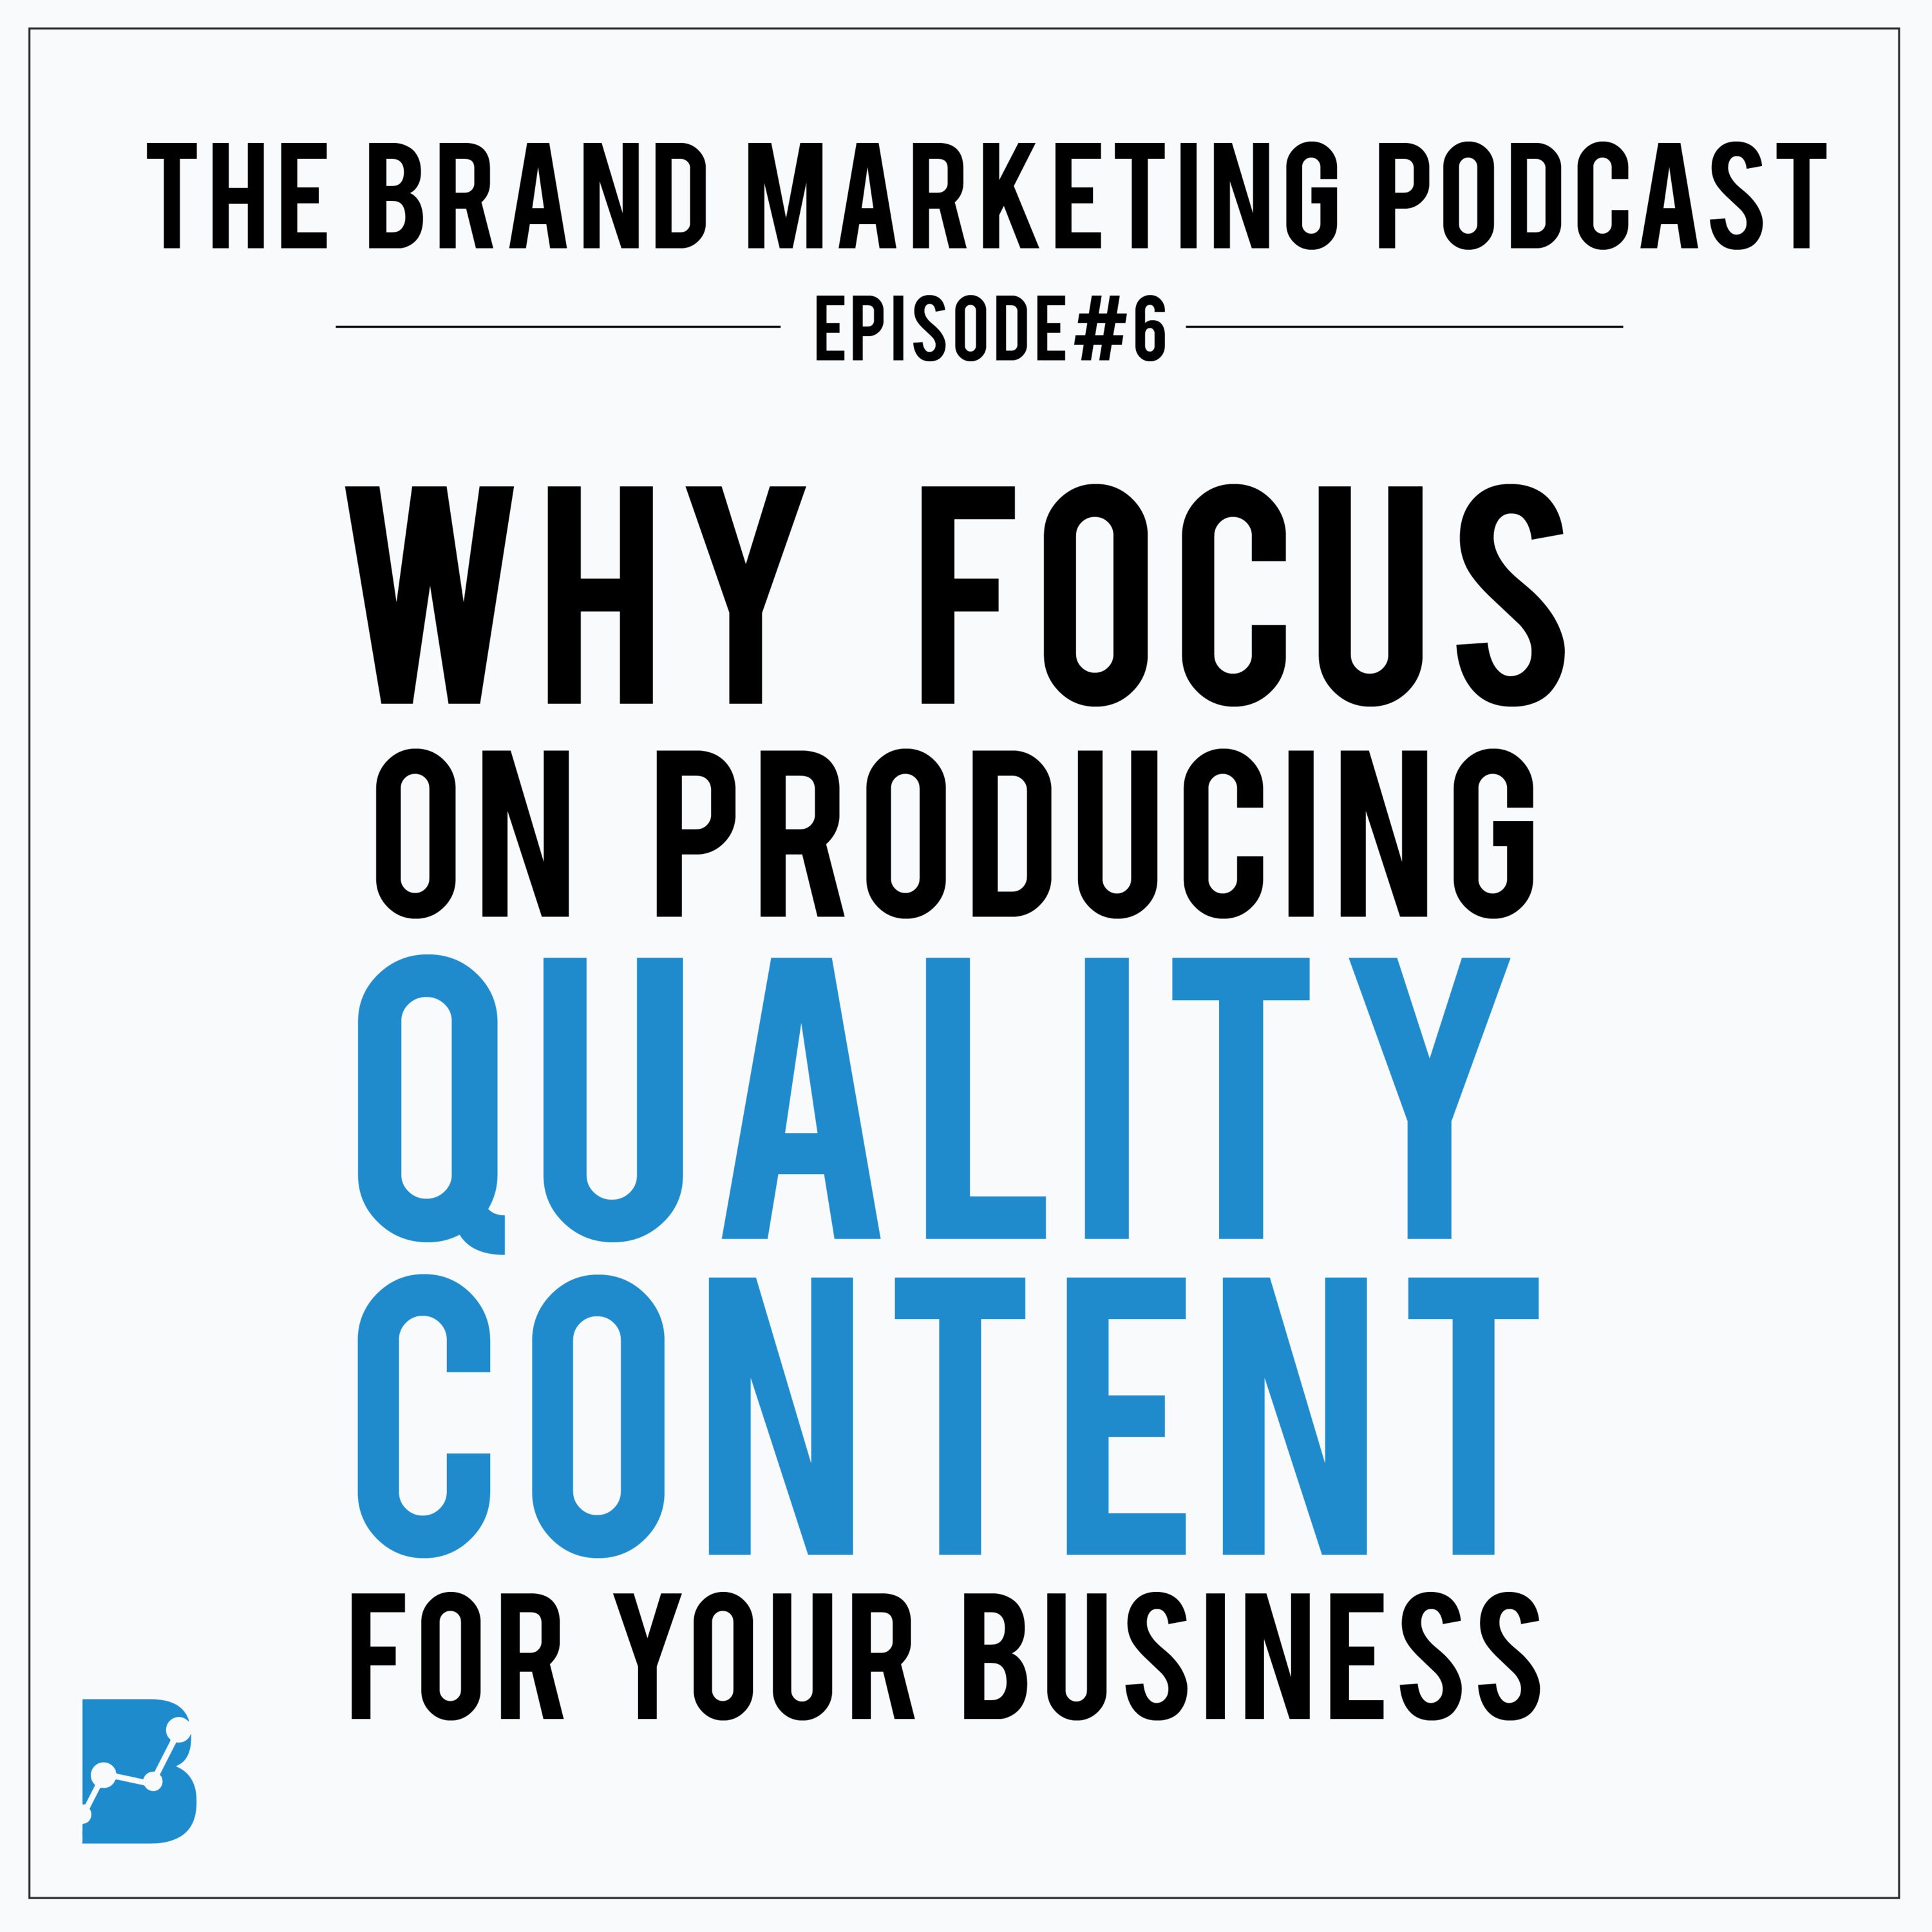 Why Focus on Producing Quality Content for Your Business